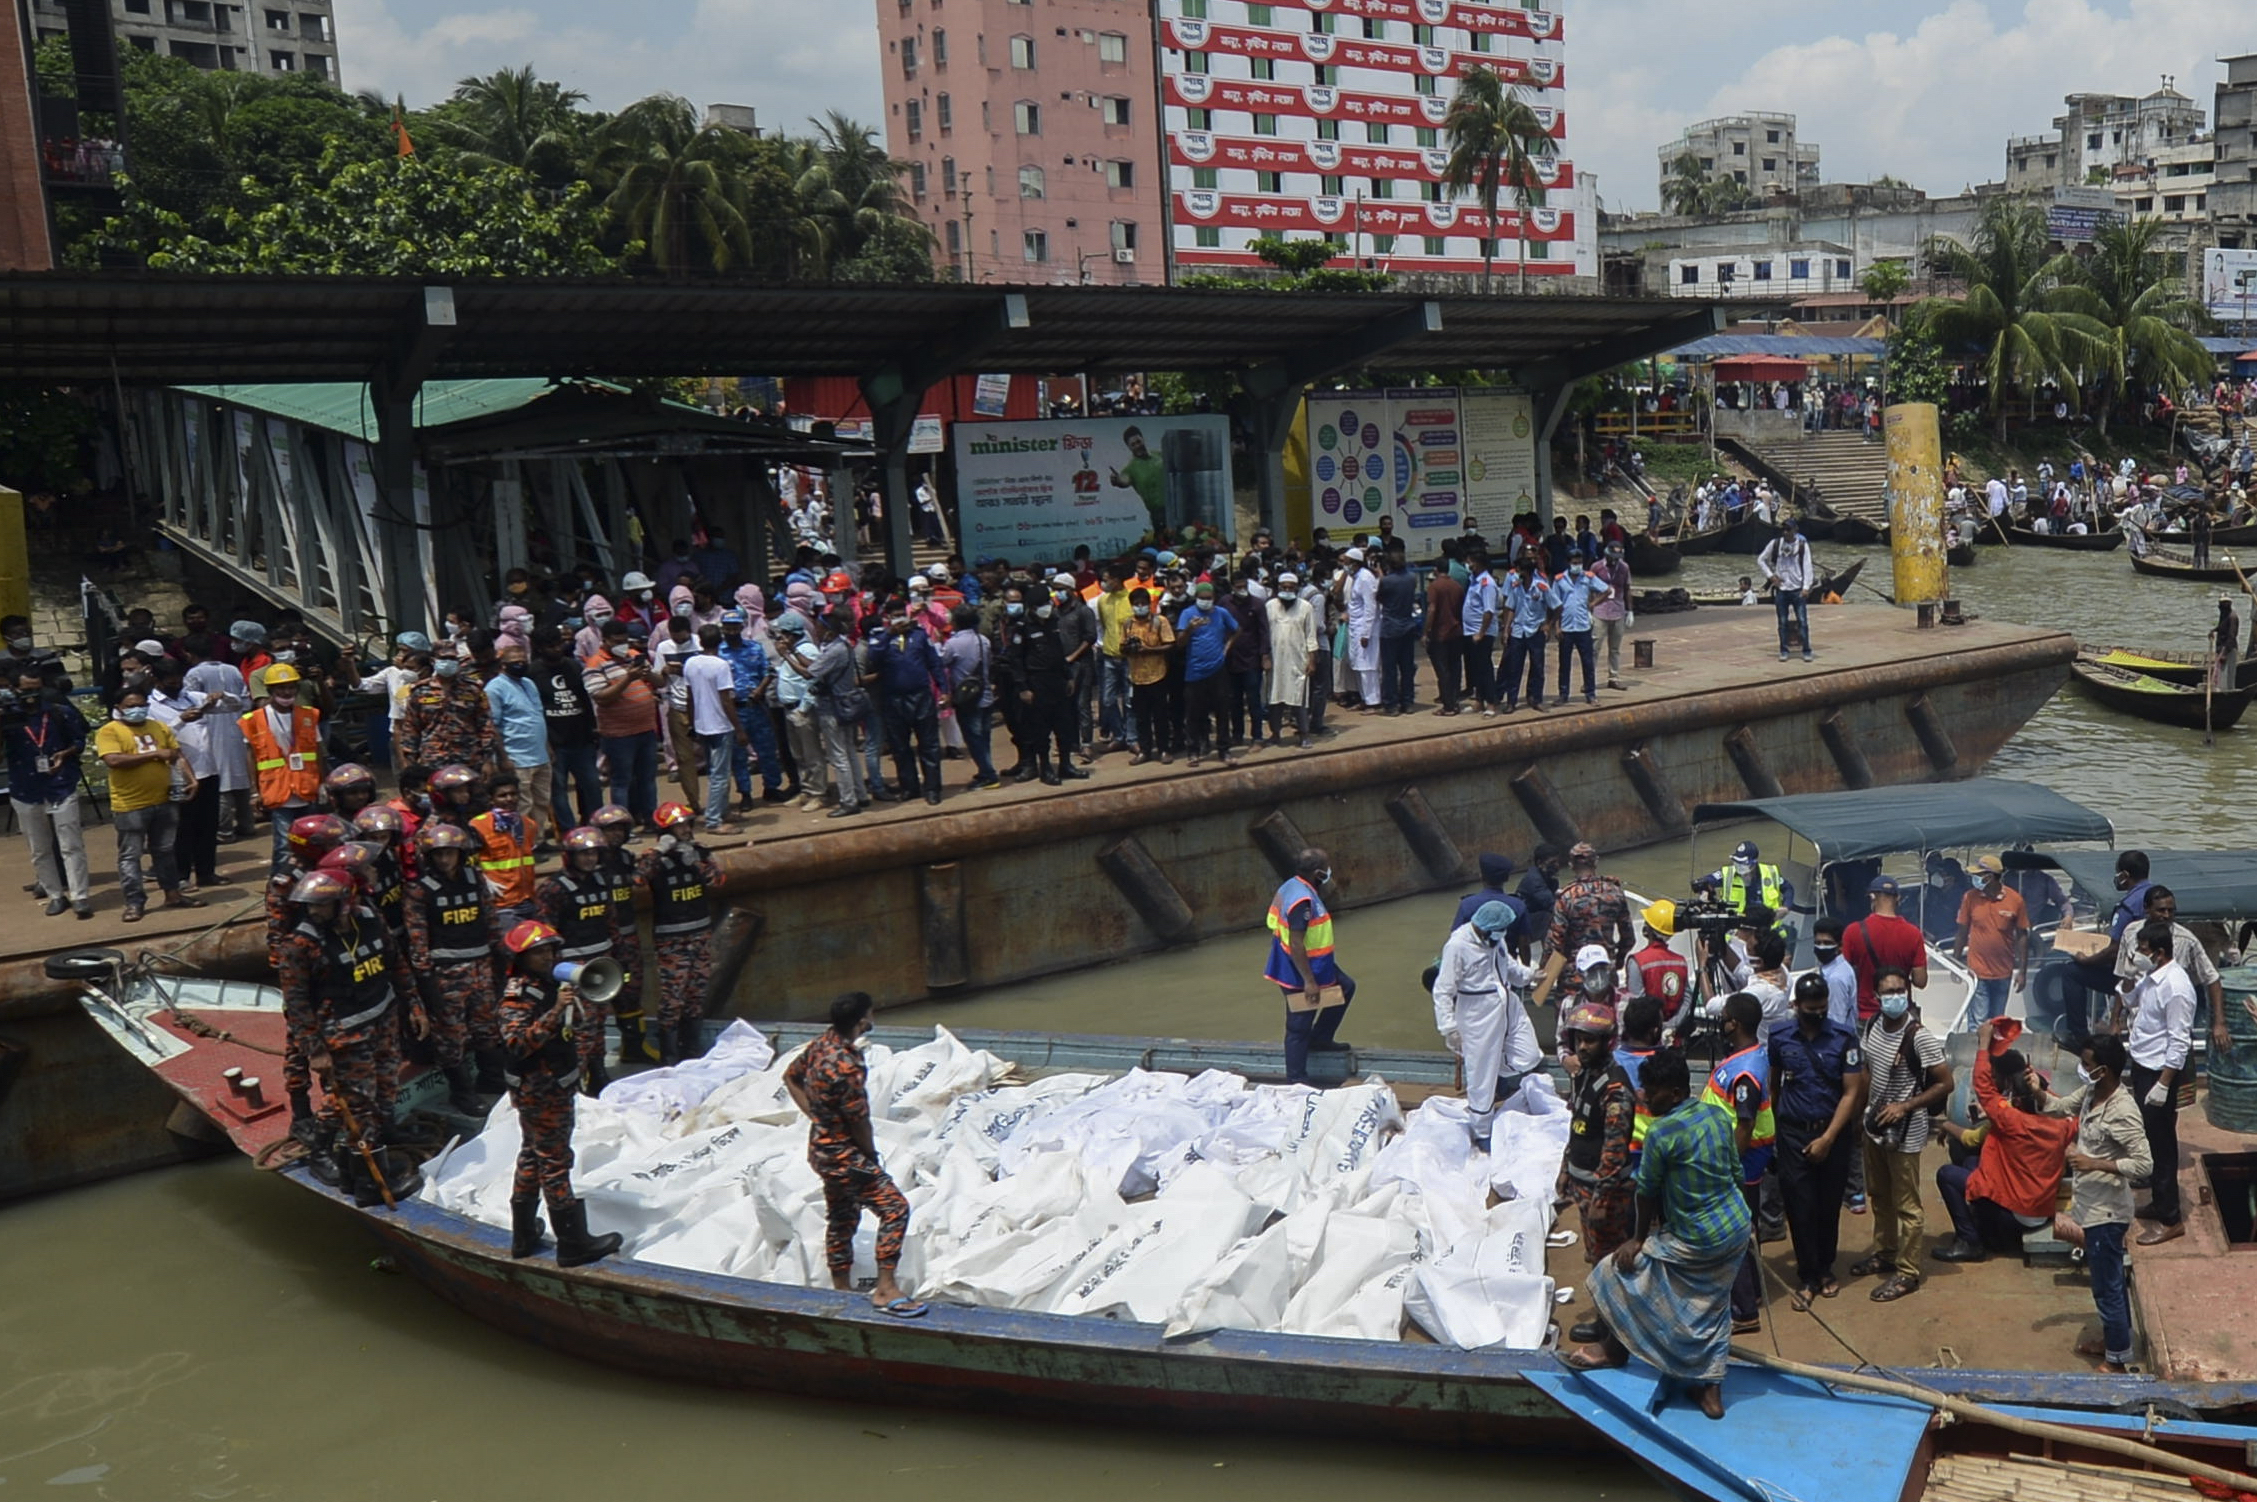 Rescue workers bring bodies of victims after a ferry capsized at the Sadarghat ferry terminal in Dhaka on June 29, 2020.  (Photo by Munir UZ ZAMAN / AFP) (Photo by MUNIR UZ ZAMAN/AFP via Getty Images)